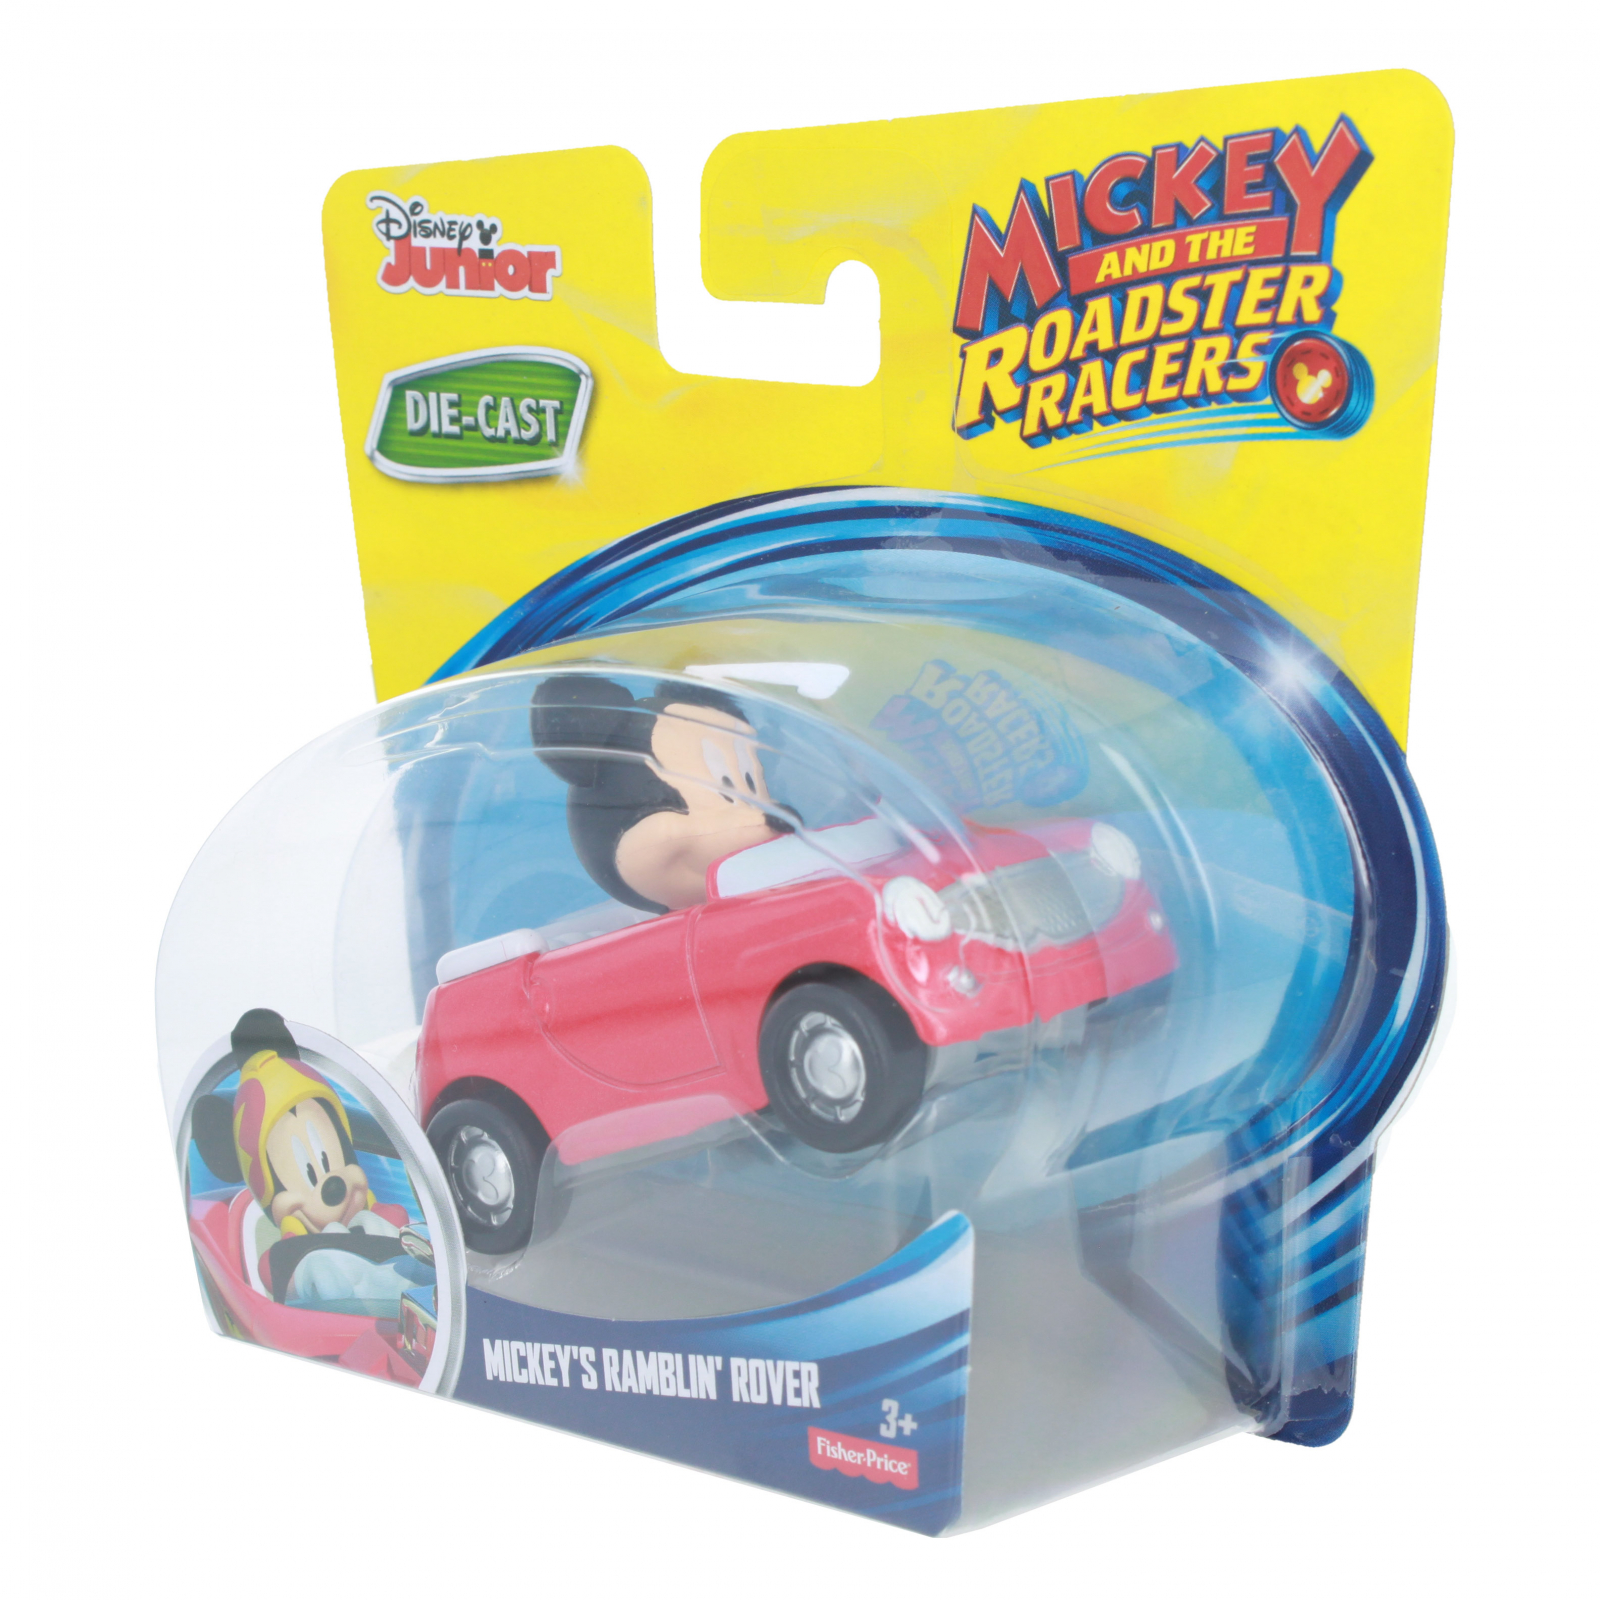 Disney Mickey Mouse Roadster Racer Die-cast Ramblin Rover